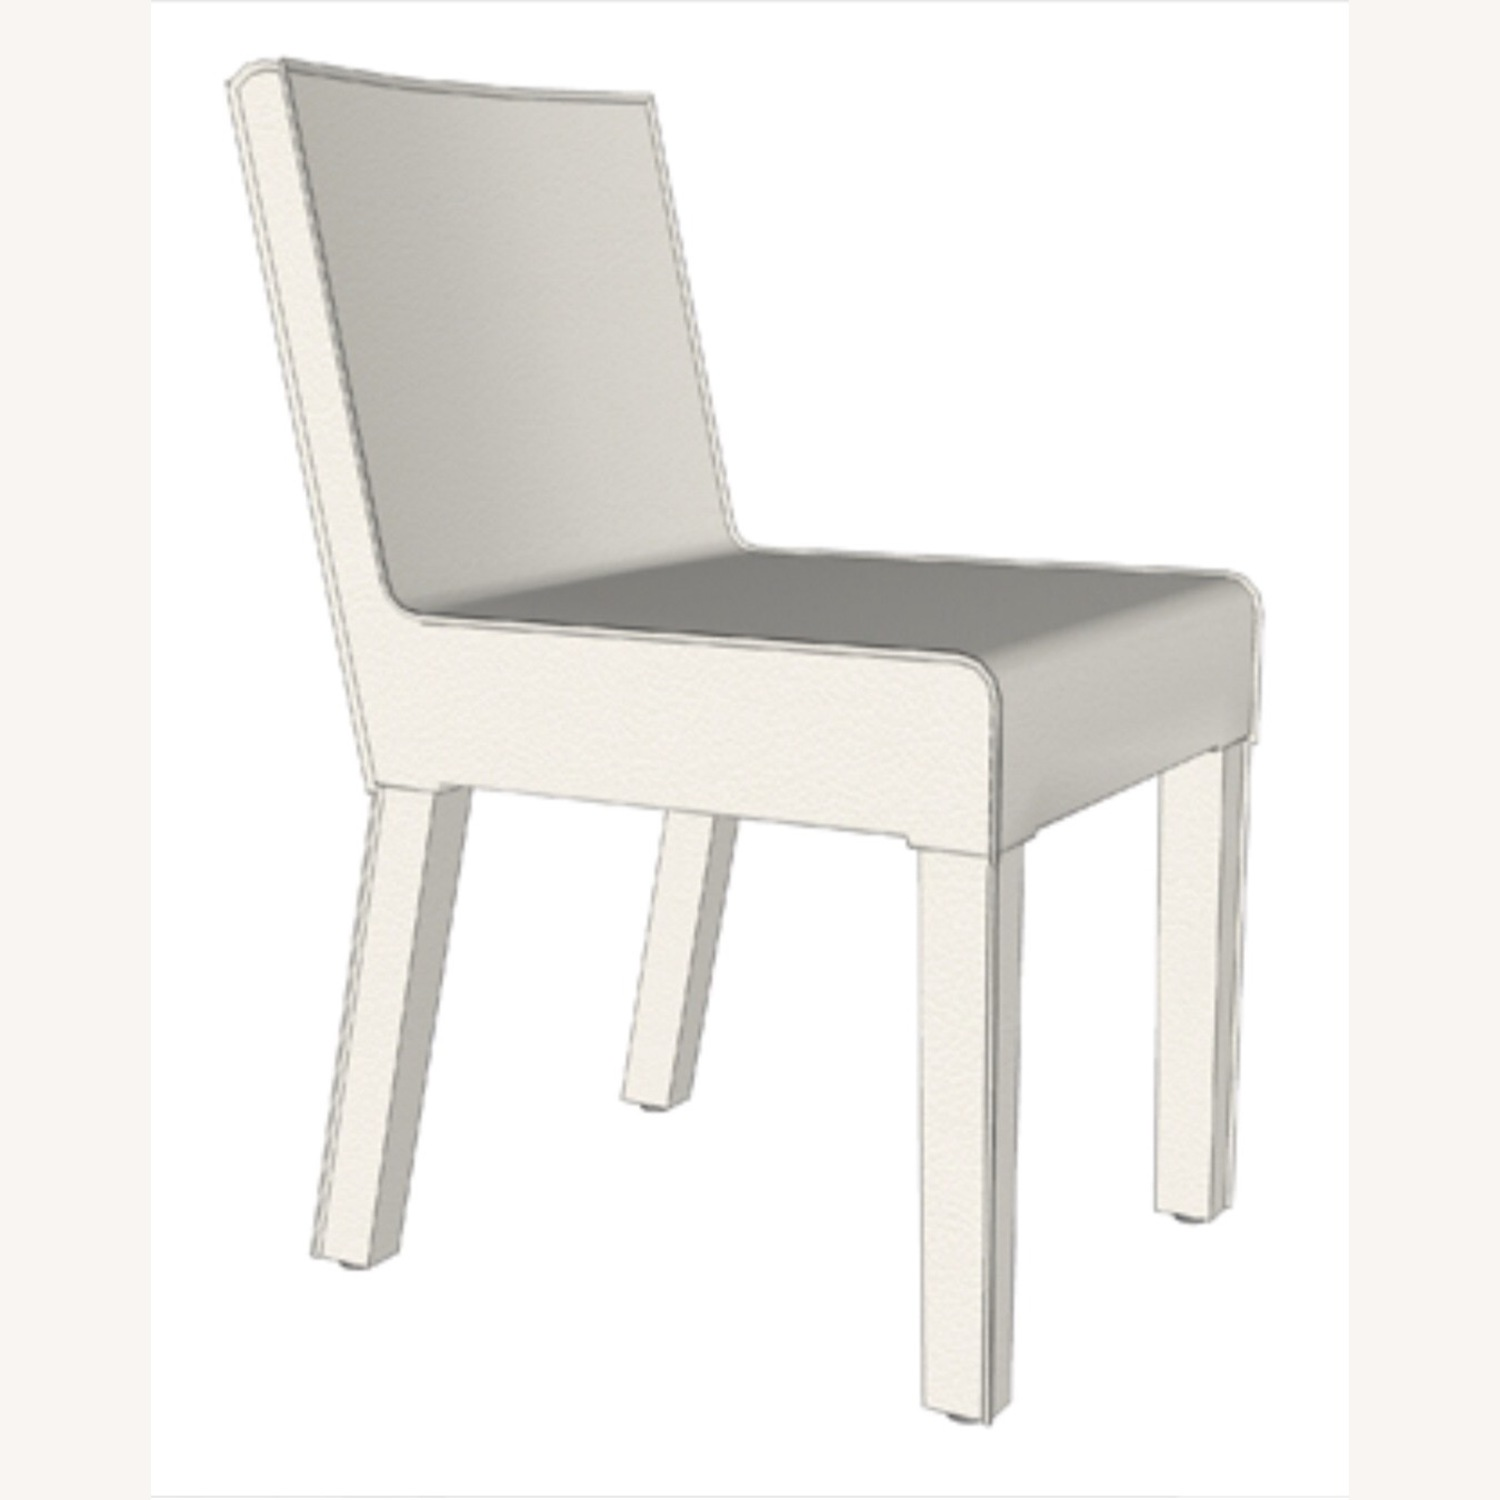 4 Chalk Leather Dining Chairs - image-6